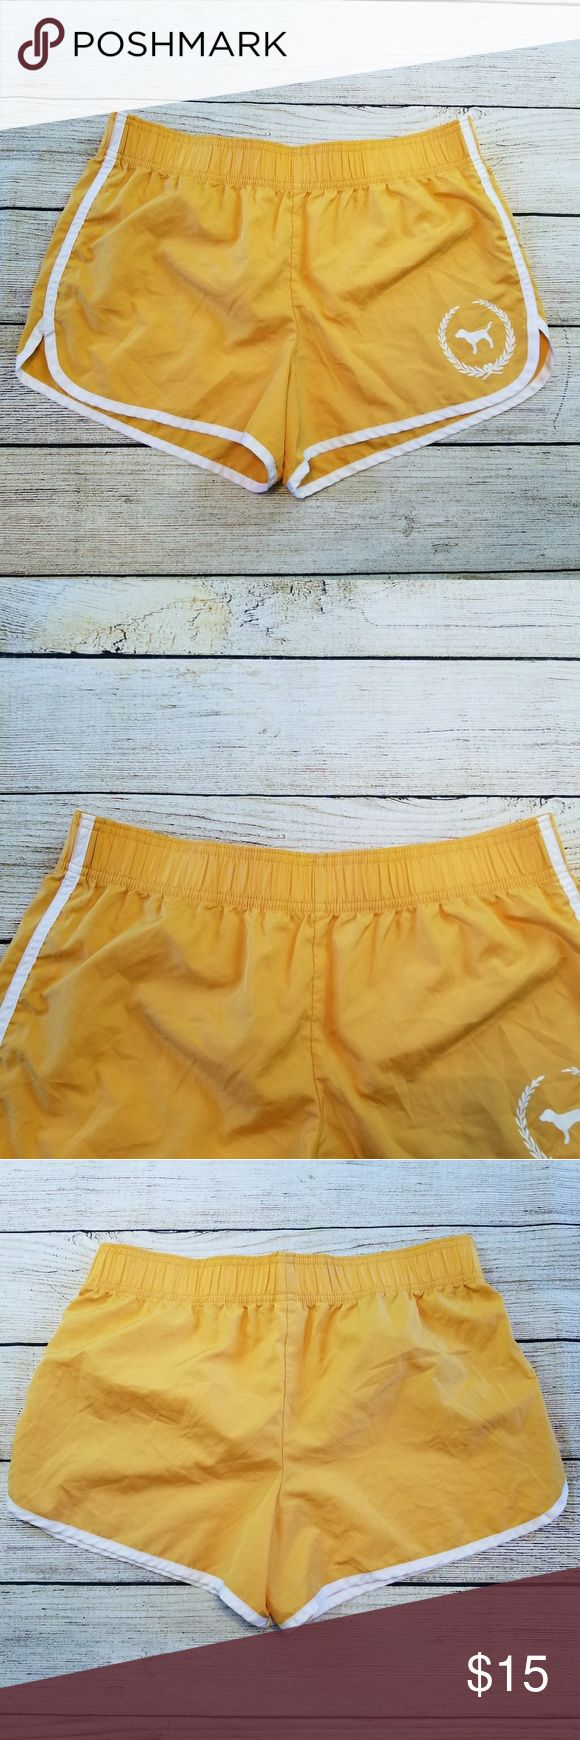 Victoria secret pink shorts Cute pink shorts. Gold  and white. Lightweight,  100% polyester.  Size small new without tags. pink  Shorts